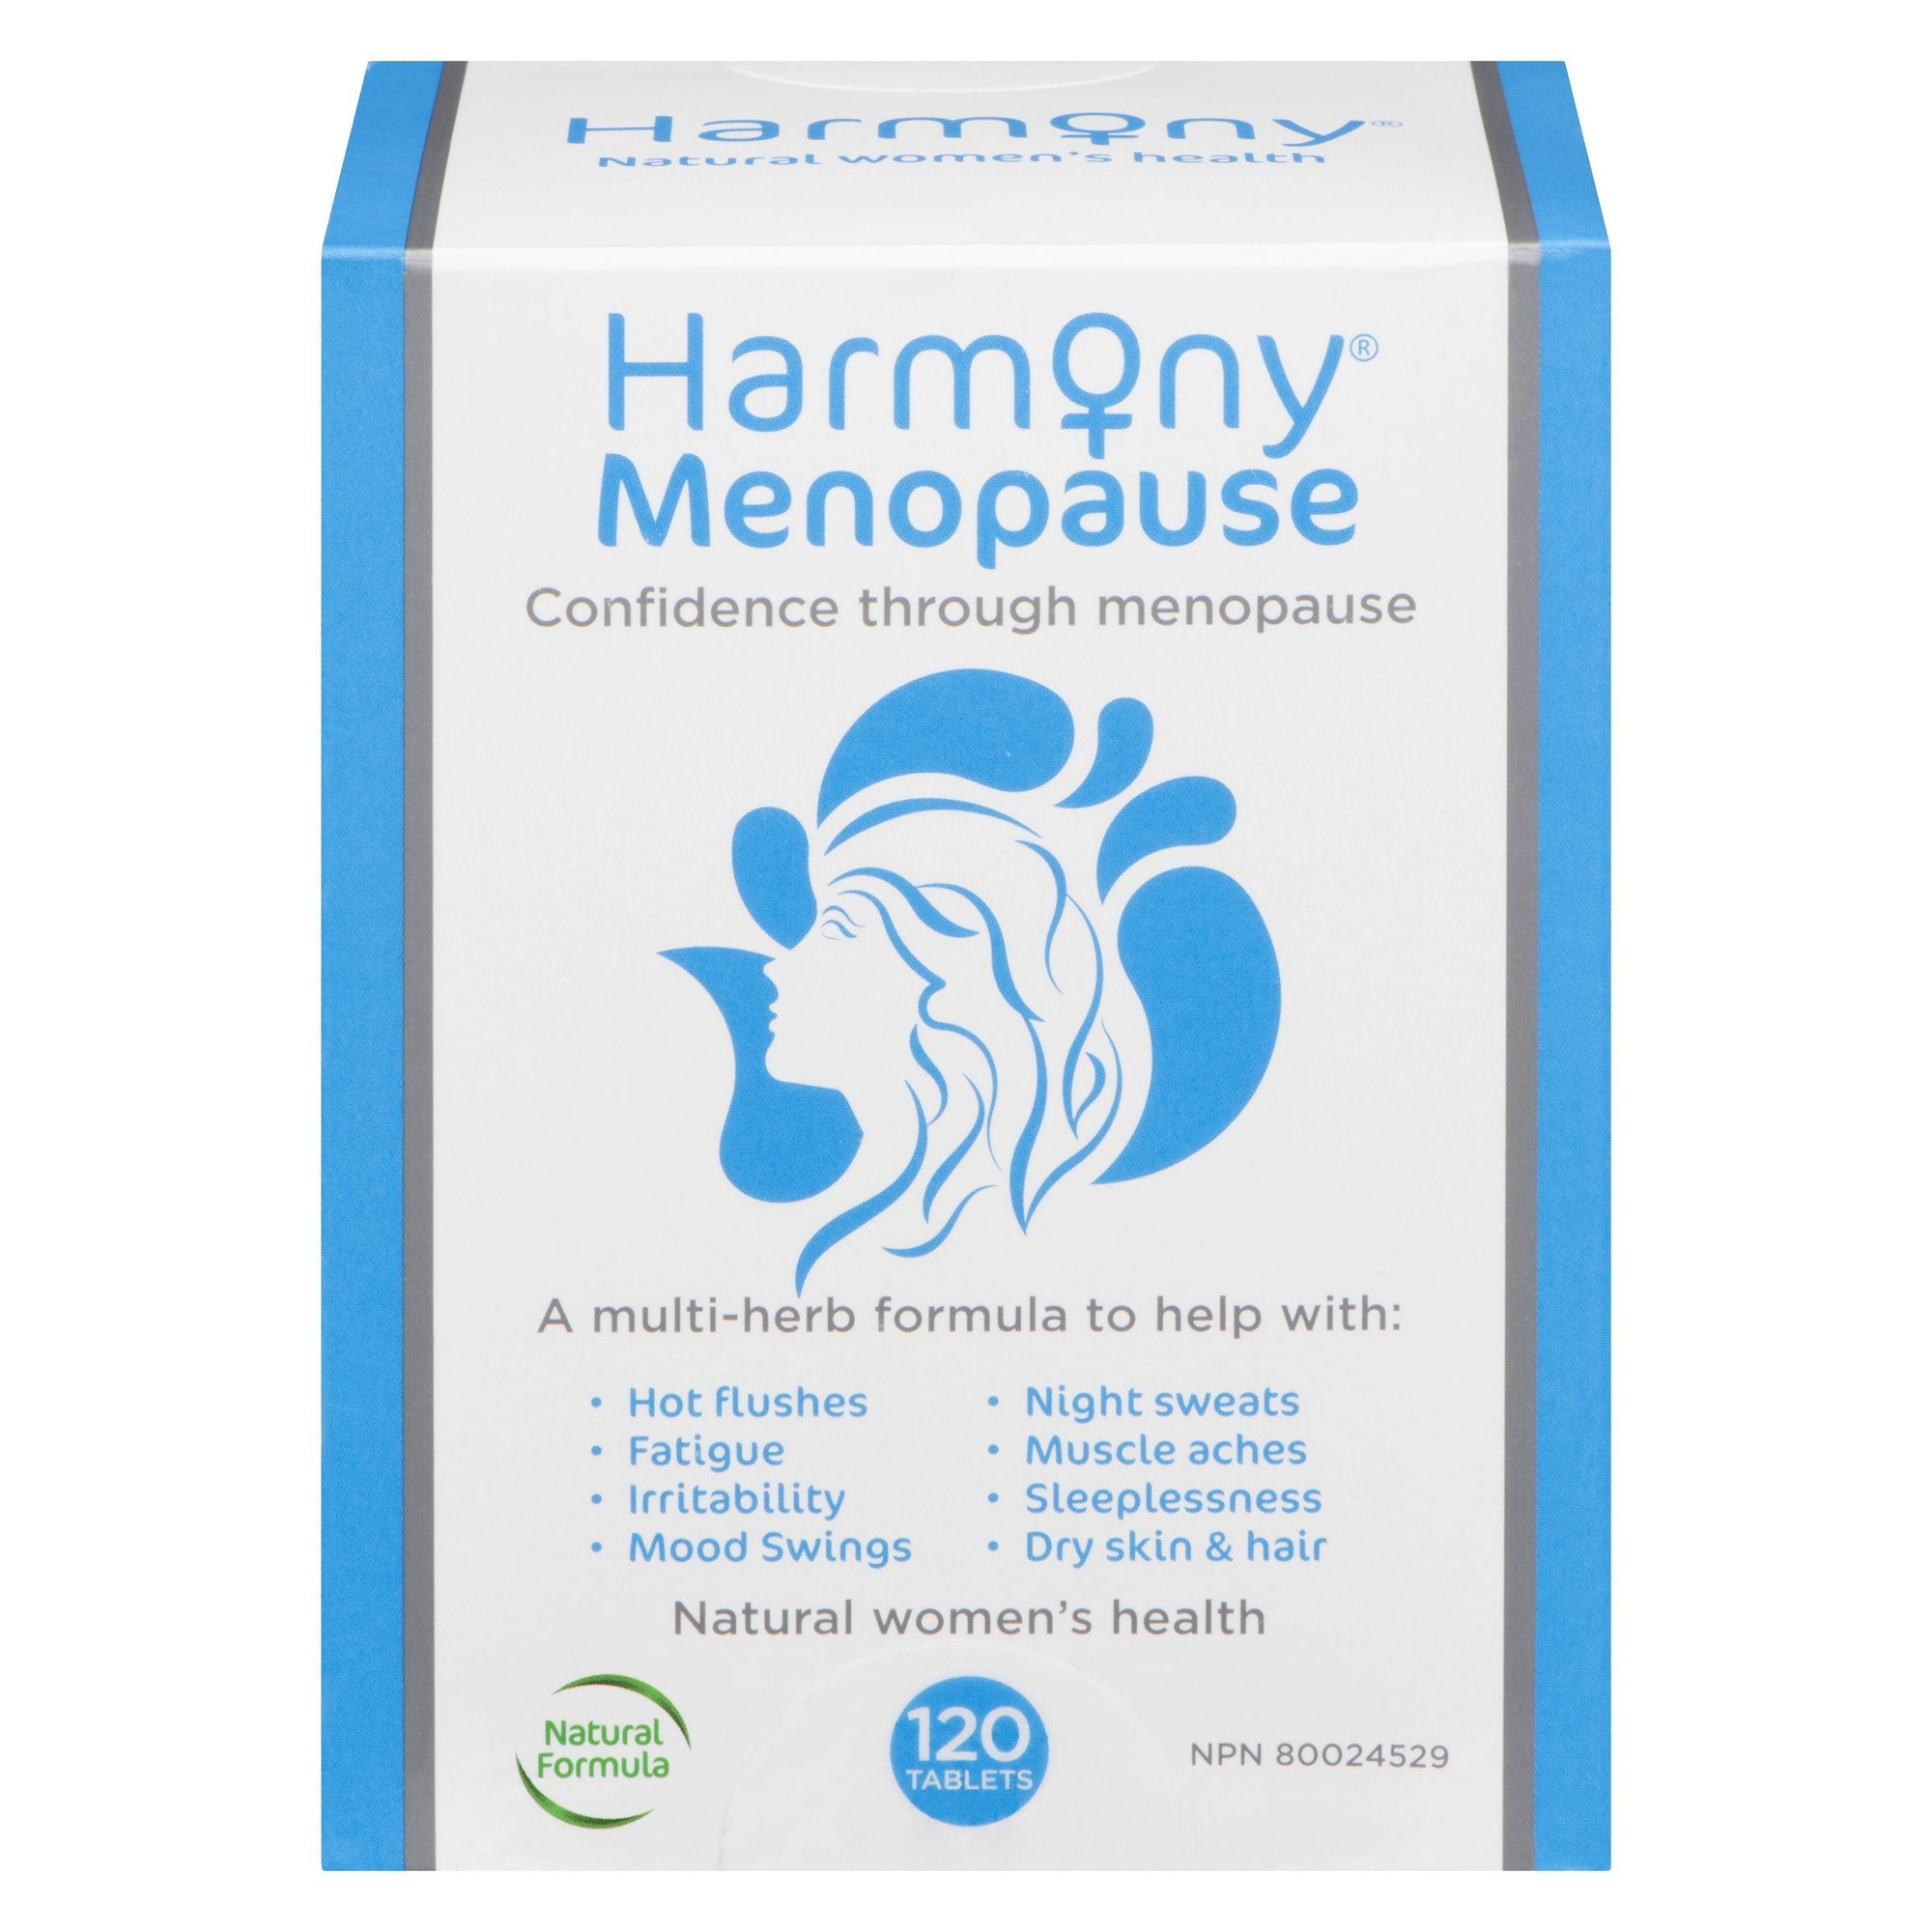 Supplements & Vitamins - Martin & Pleasance - Harmony Menopause, 120 Tabs